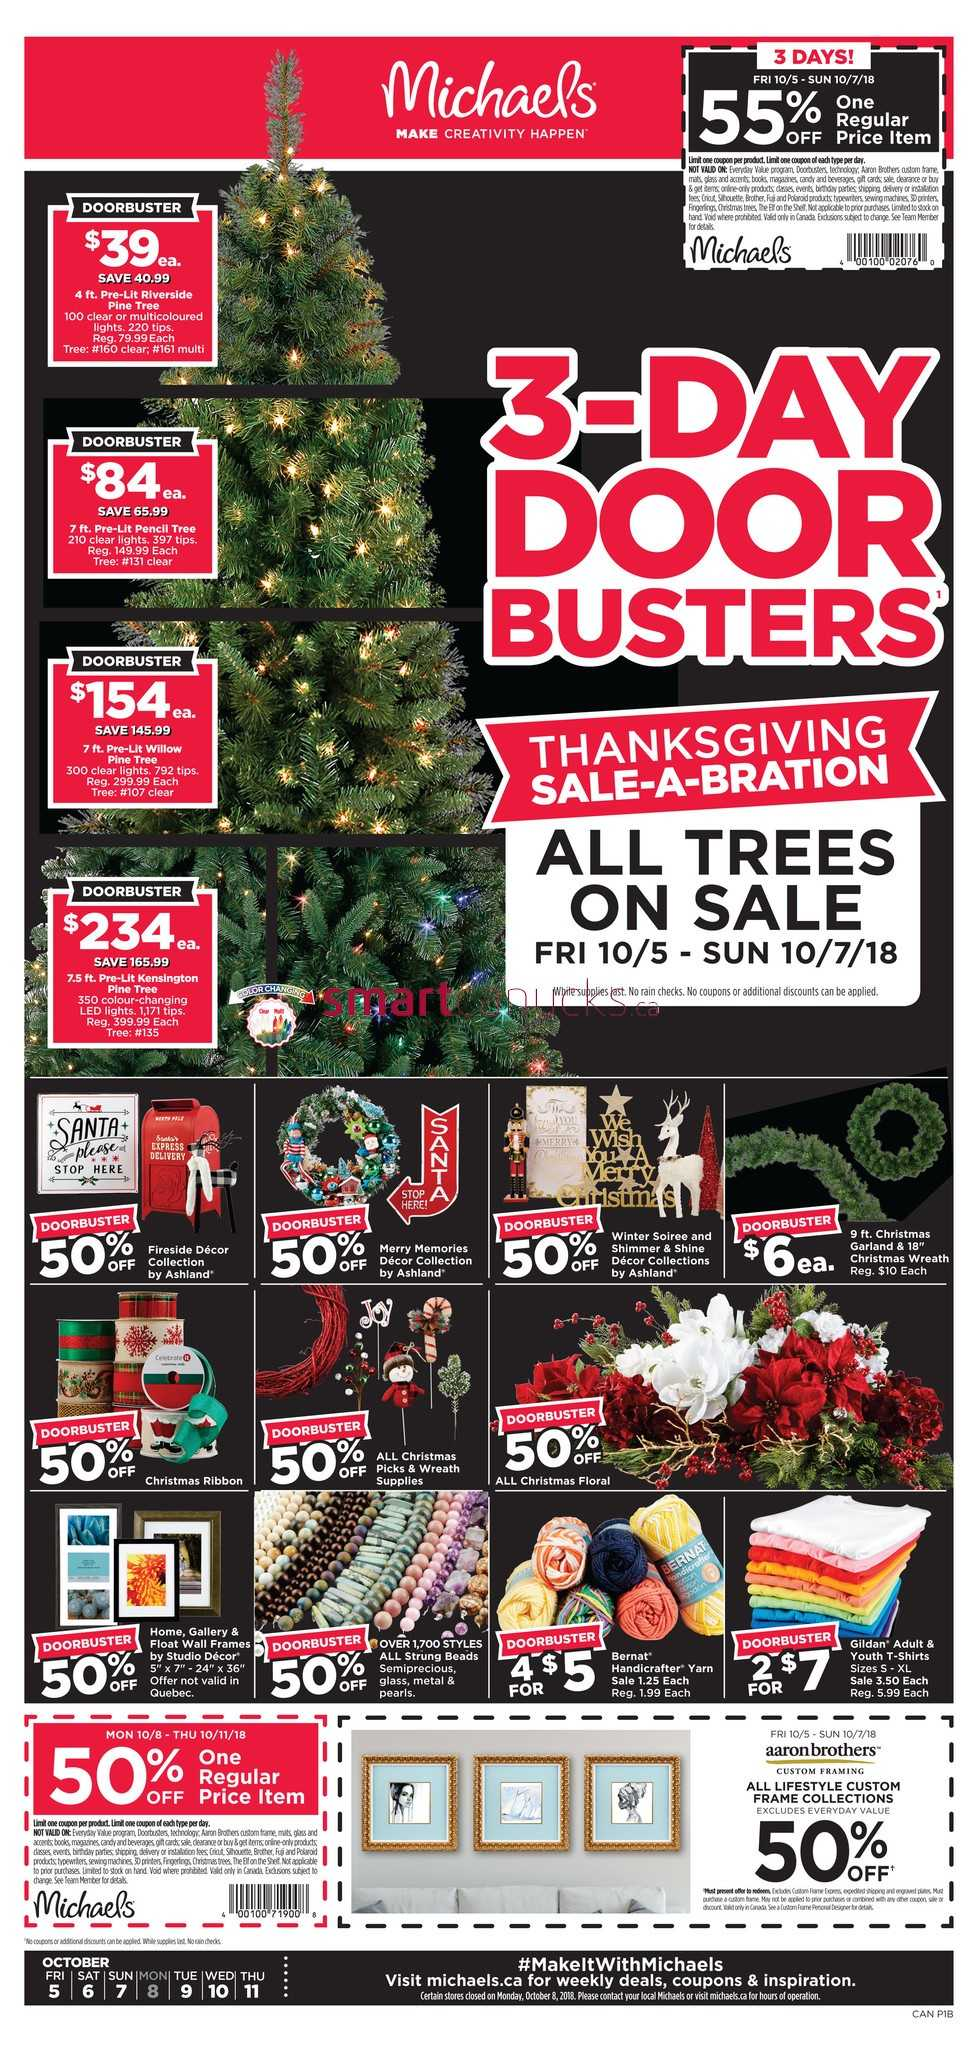 michaels flyer october 5 to 11 - Michaels Christmas Hours